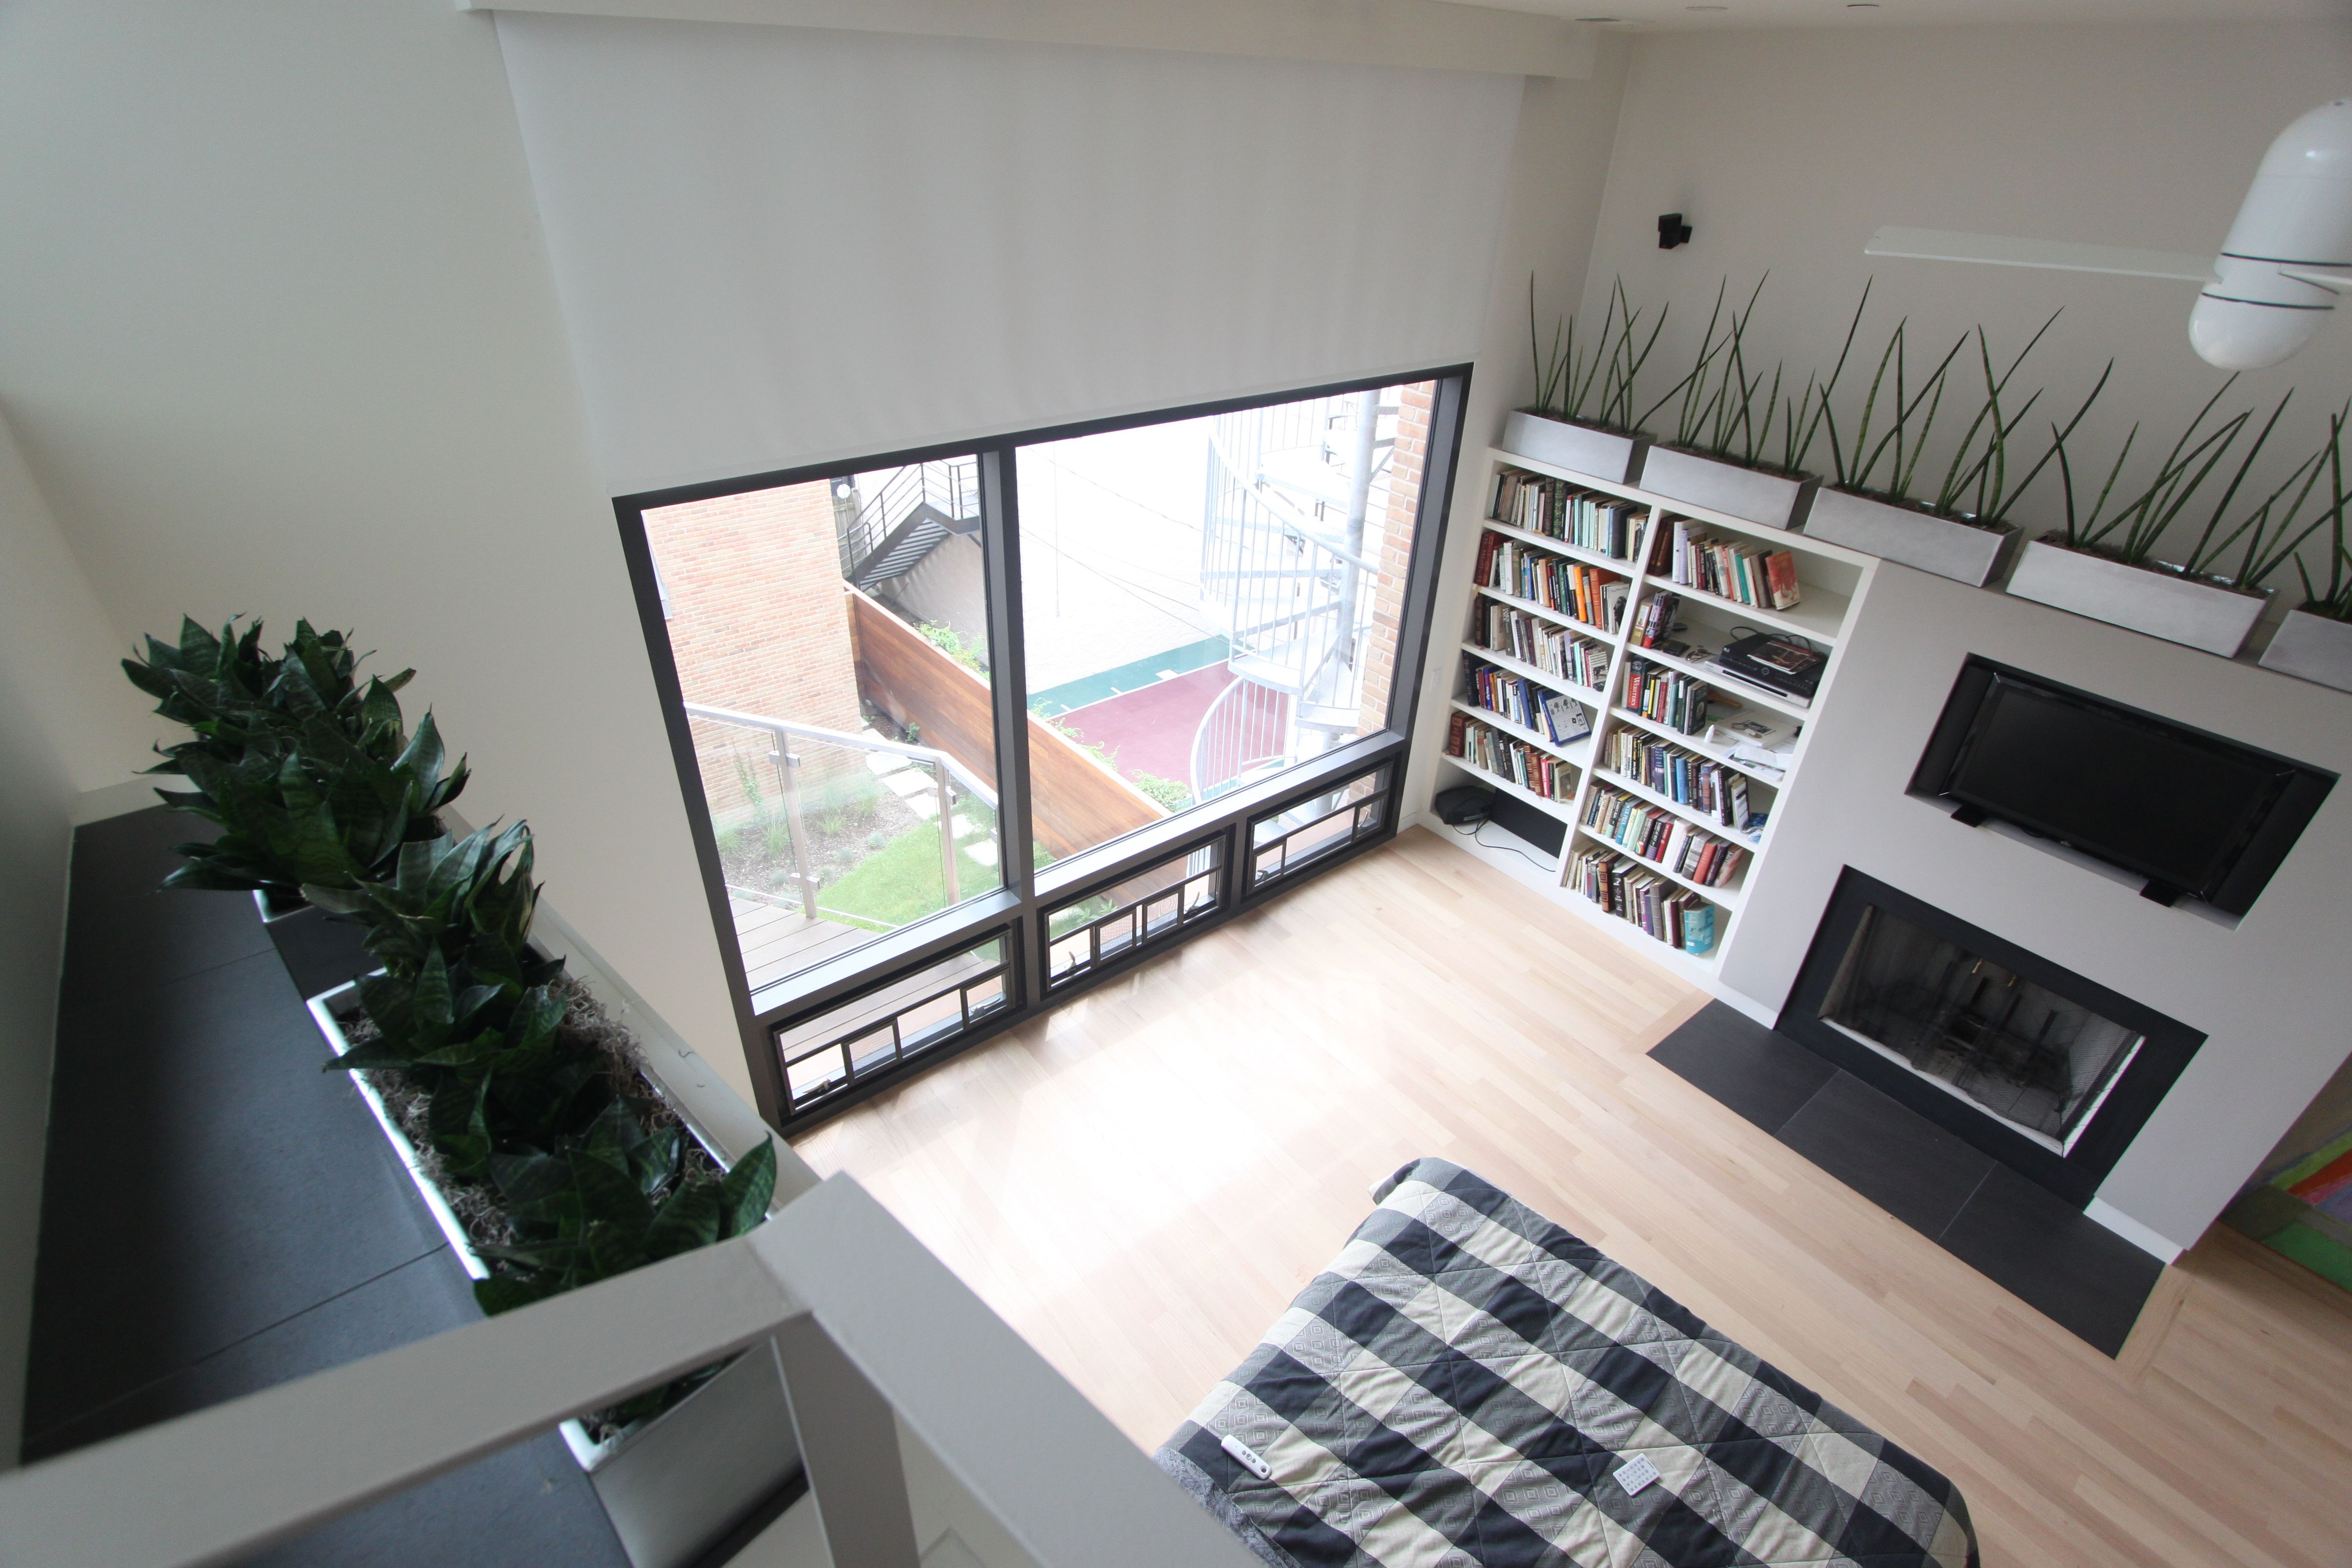 Birds Eye View Of Master Bedroom With Updated Interior Decor